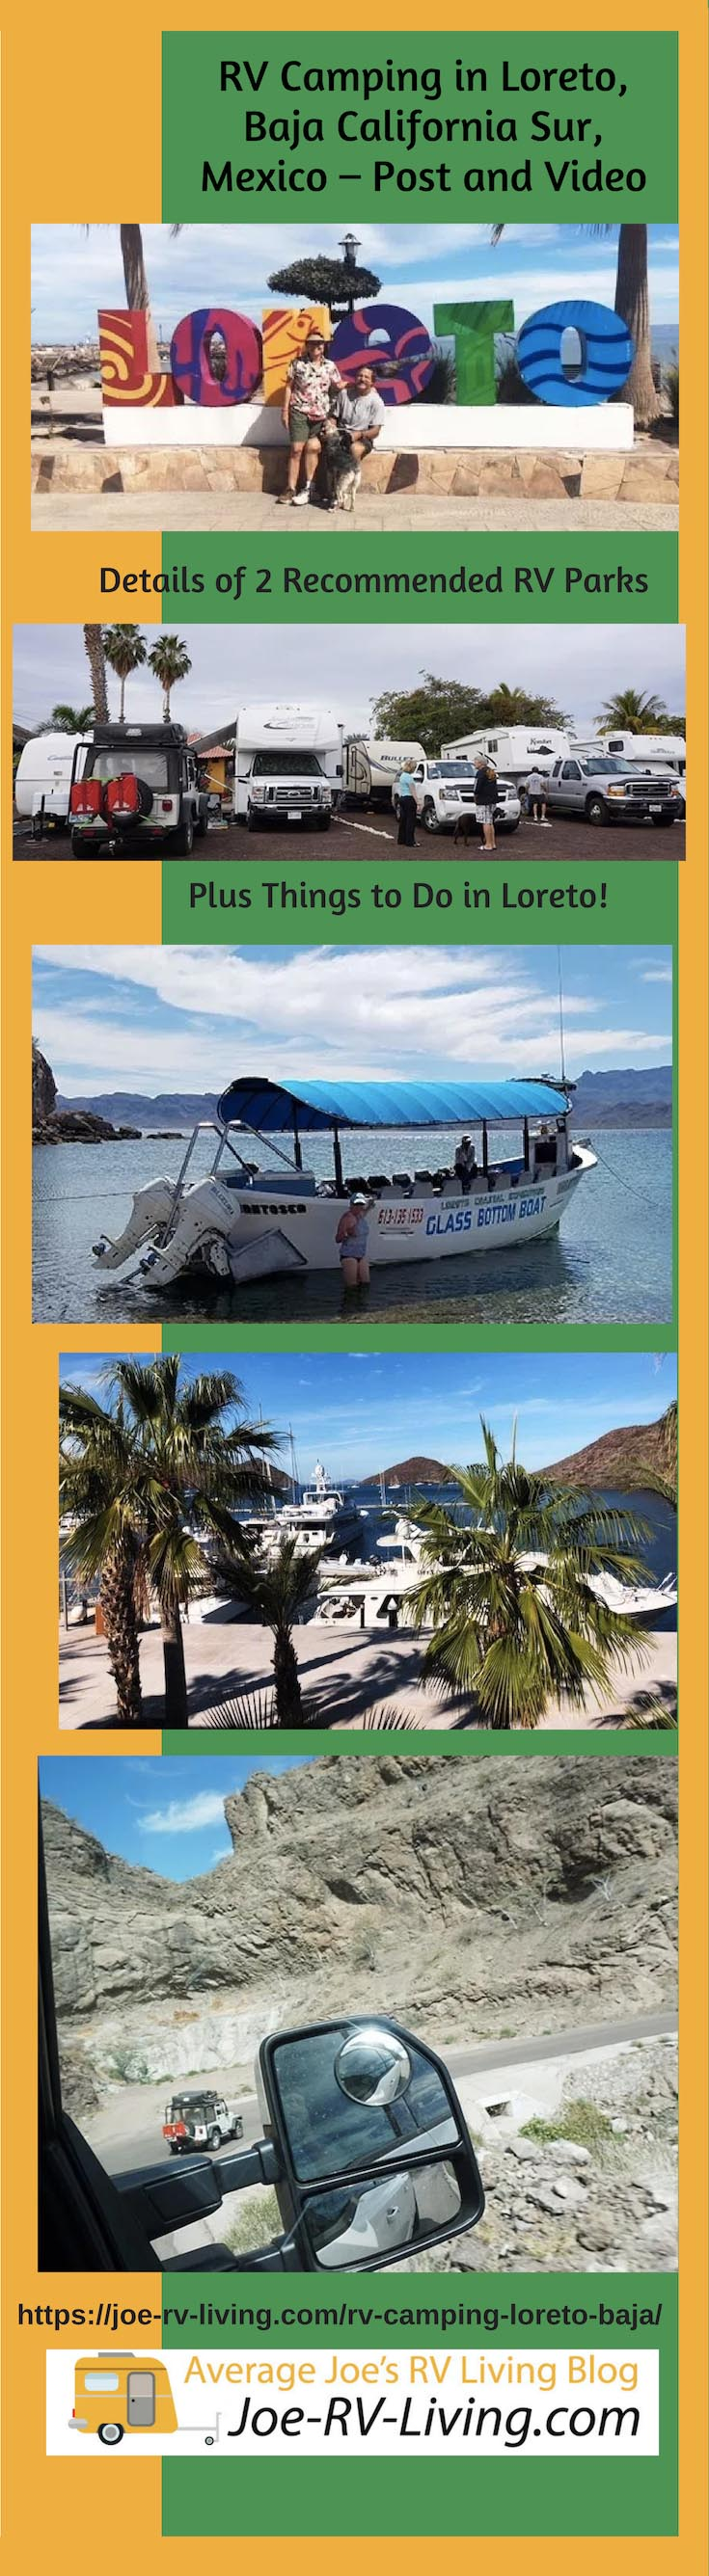 RV Camping in Loreto, Baja California Sur, Mexico - Post and Video